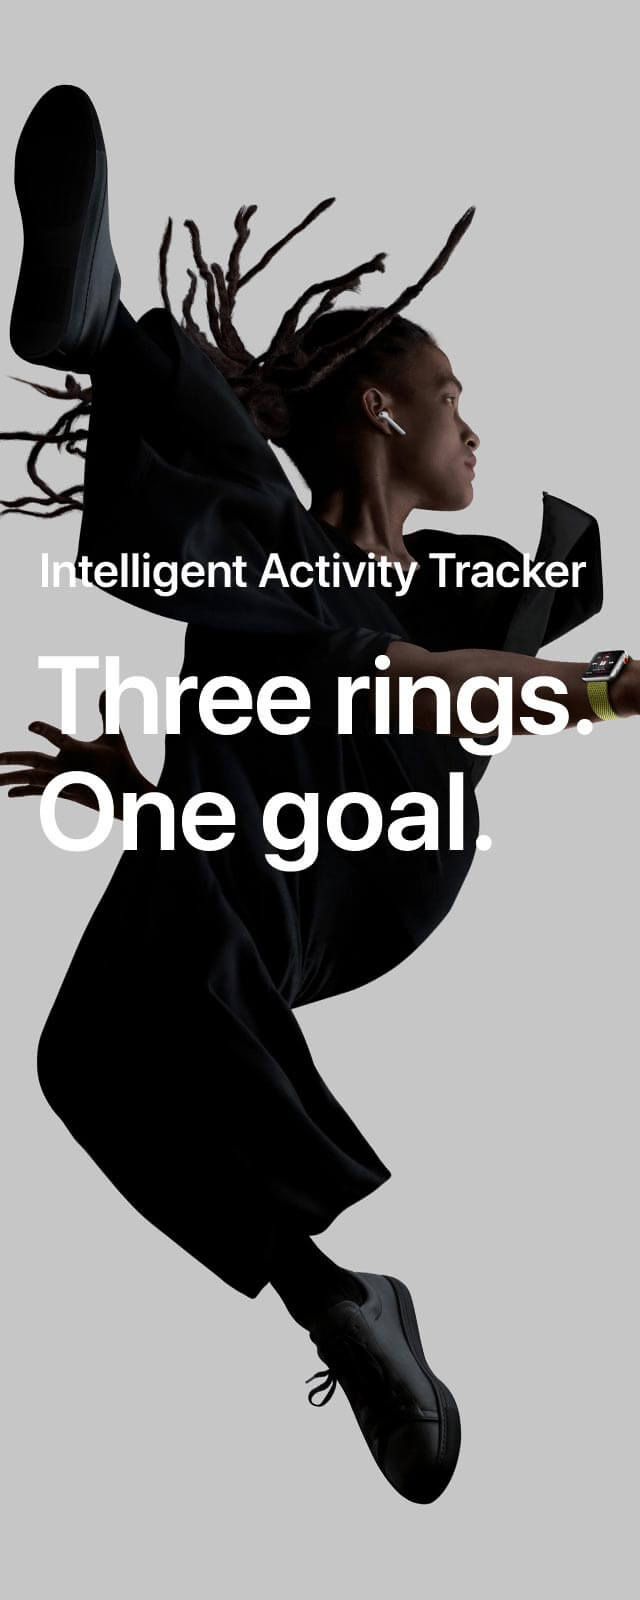 Apple Watch Series 3 Intelligent Activity Tracker